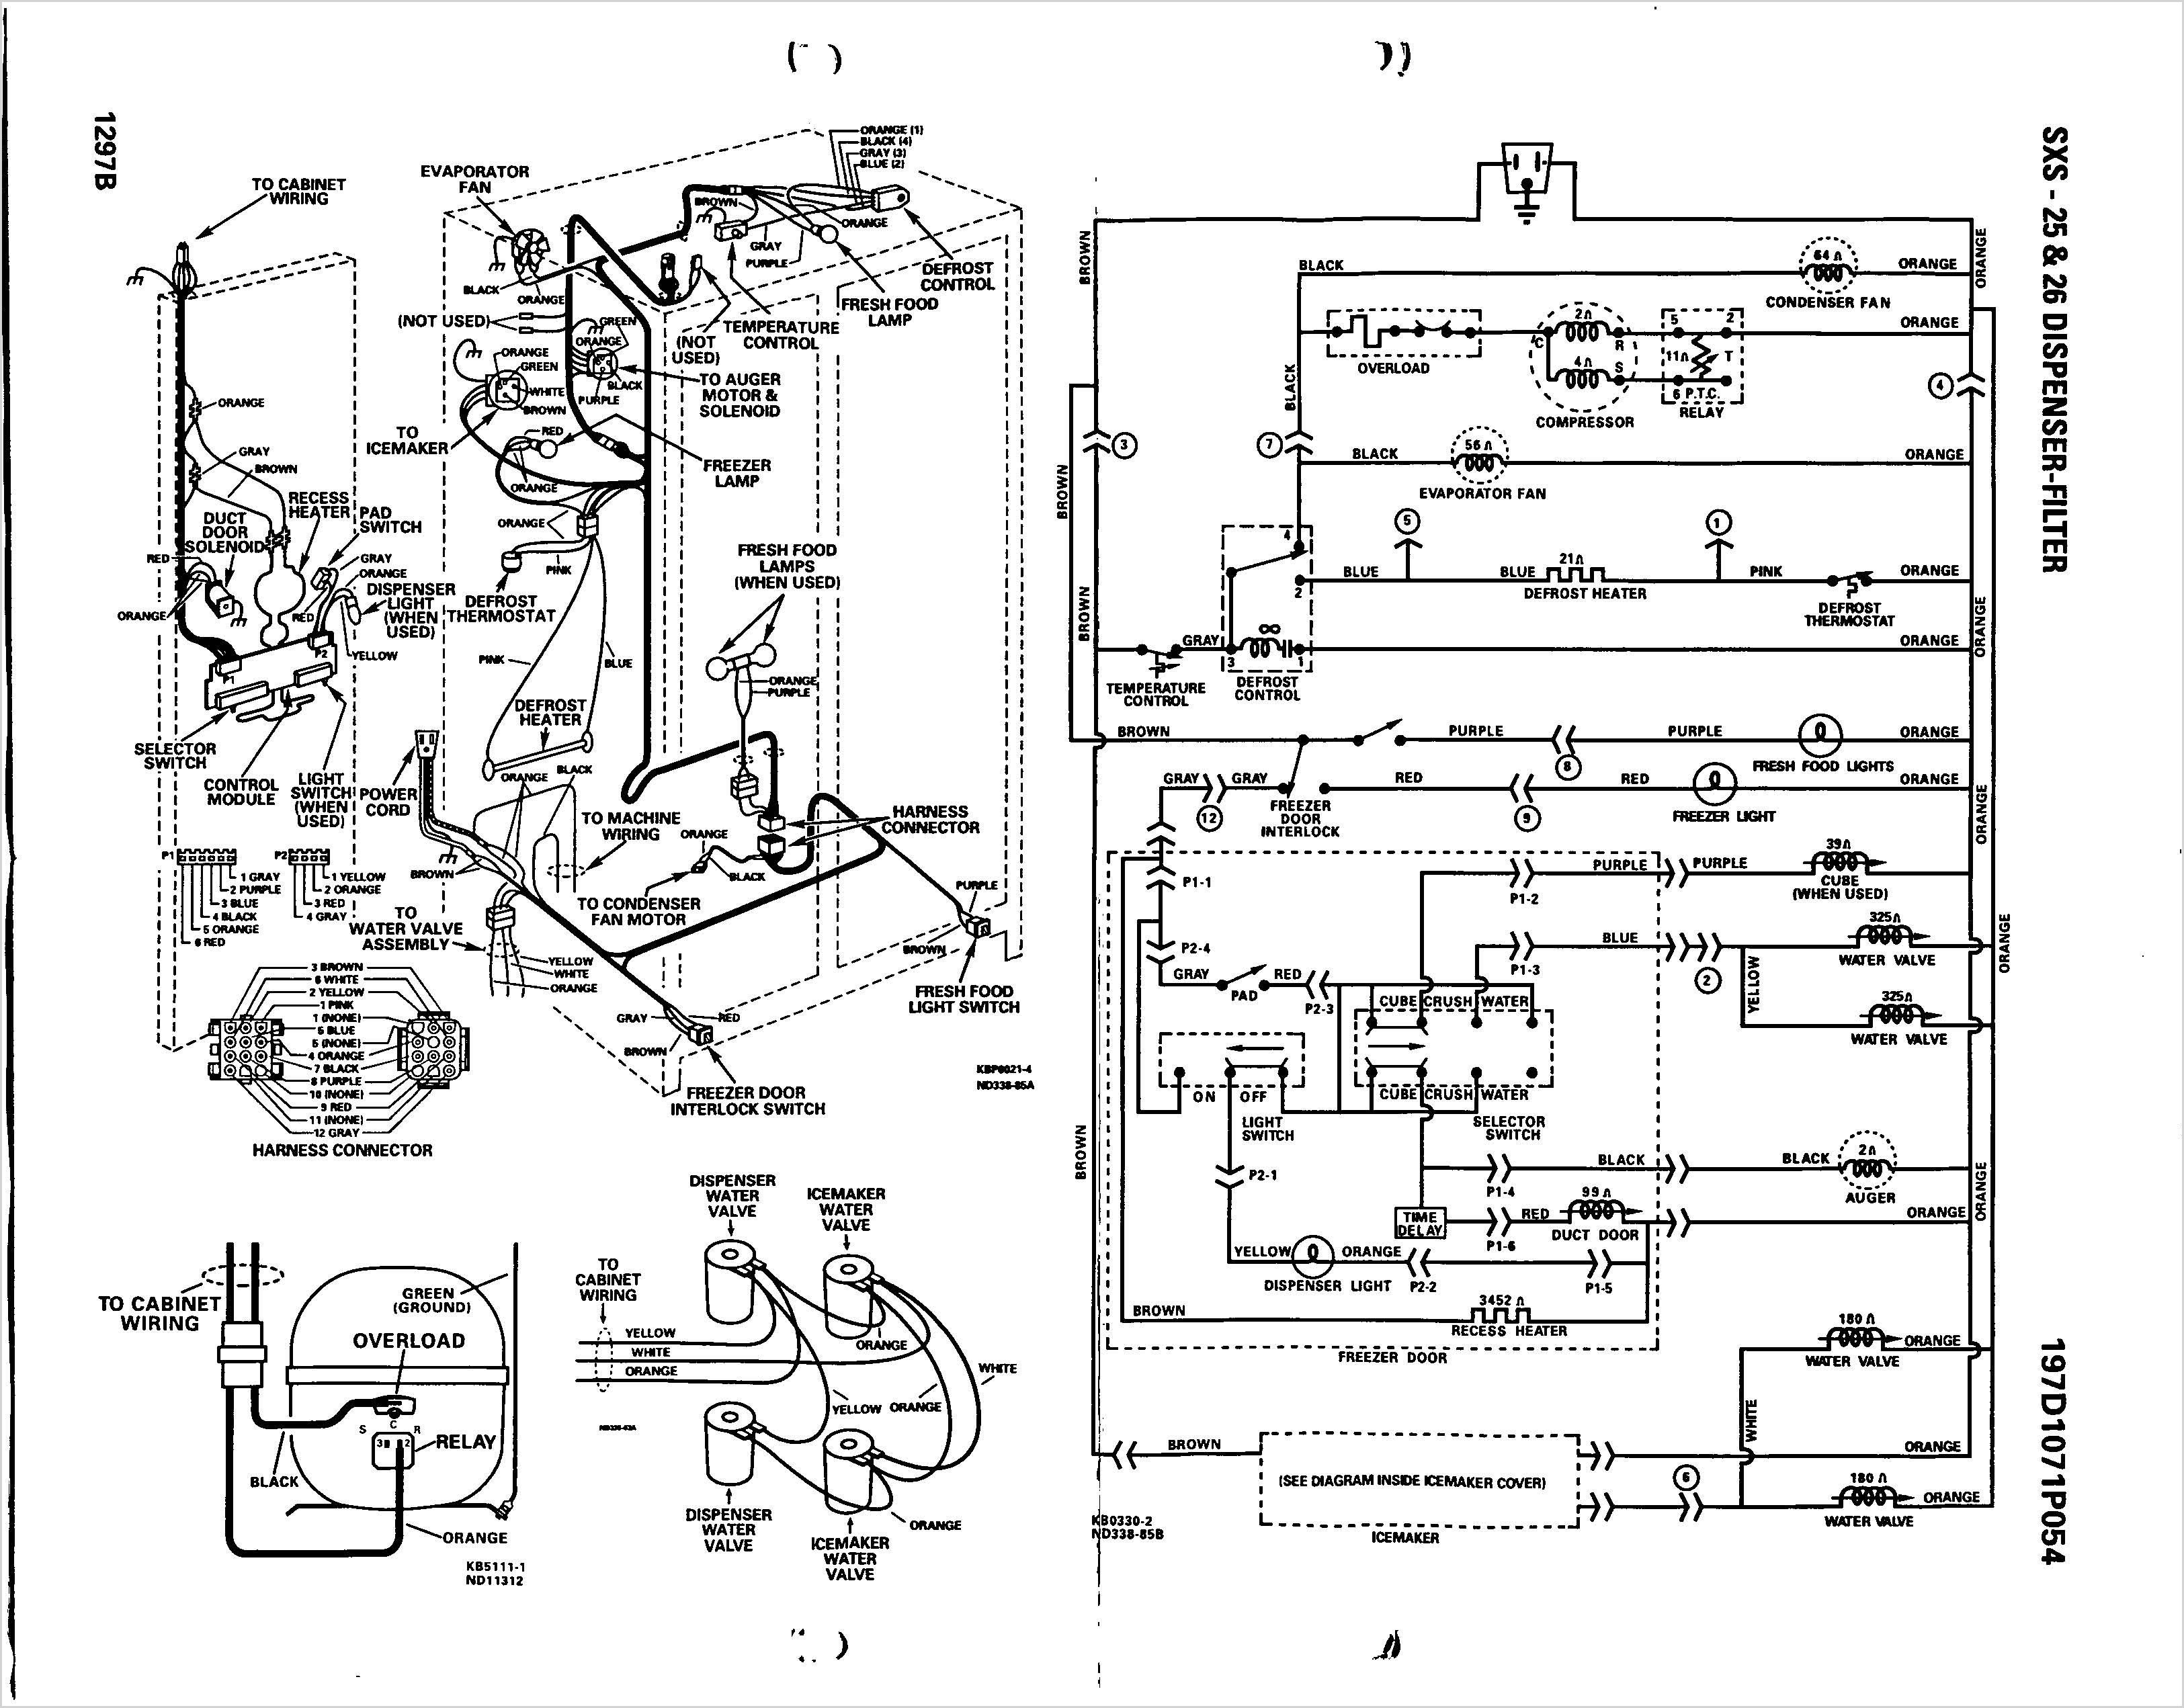 samsung refrigerator wiring diagram Download-Wiring Diagram Appliance Dryer Fresh Amana Dryer Wiring Diagram New Ge Refrigerator Also 5-j